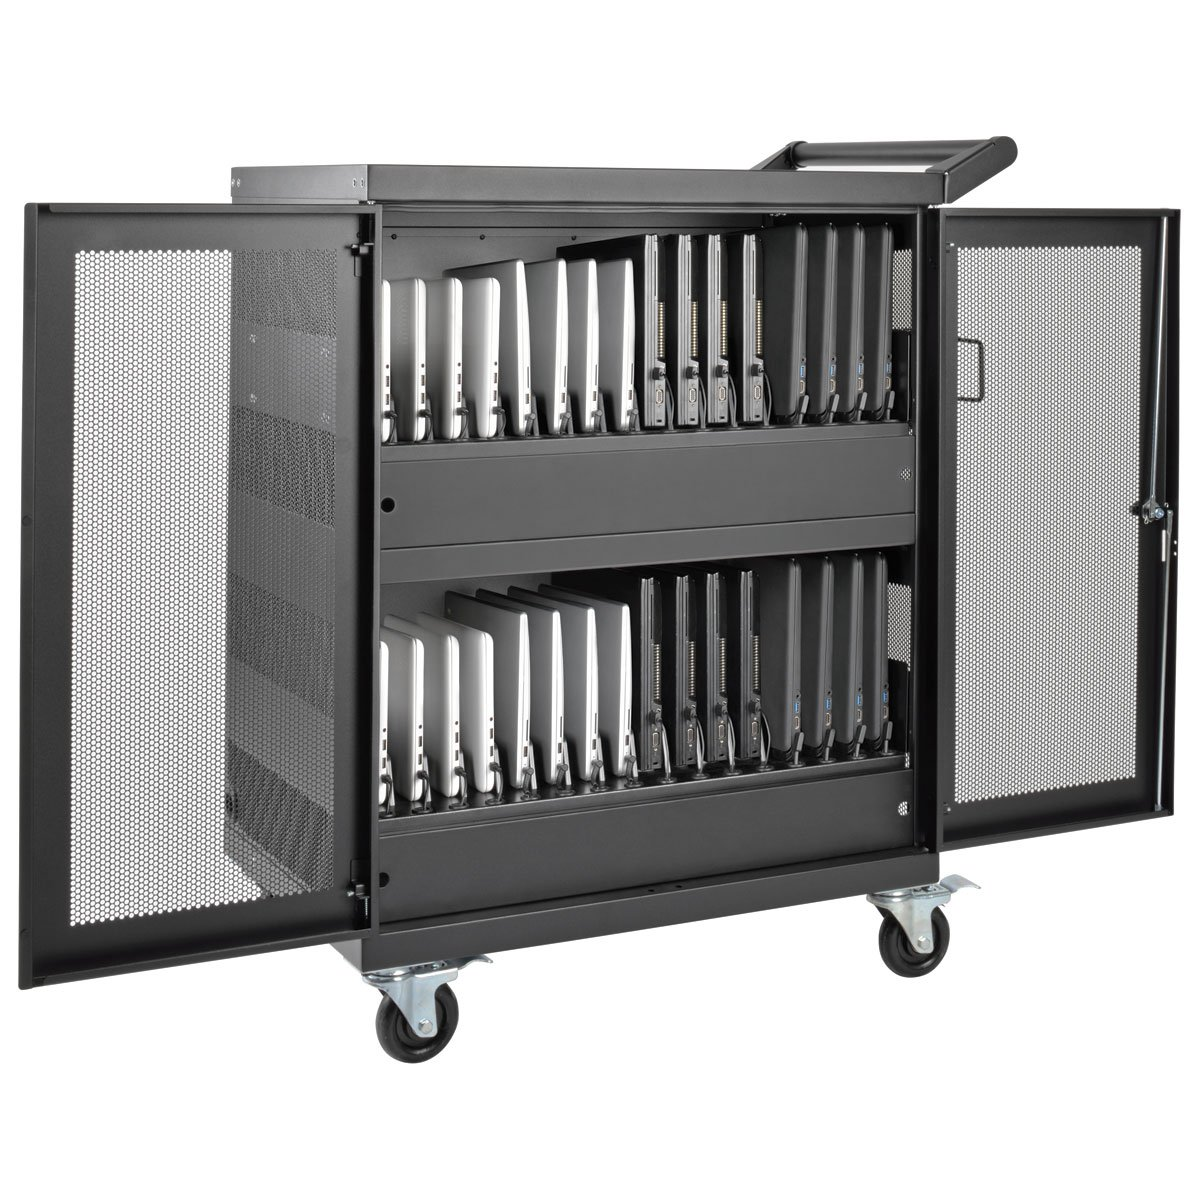 Tripp Lite 32-Port AC Charging Cart Storage Station for Chromebooks, Laptops & Tablets (CSC32AC)